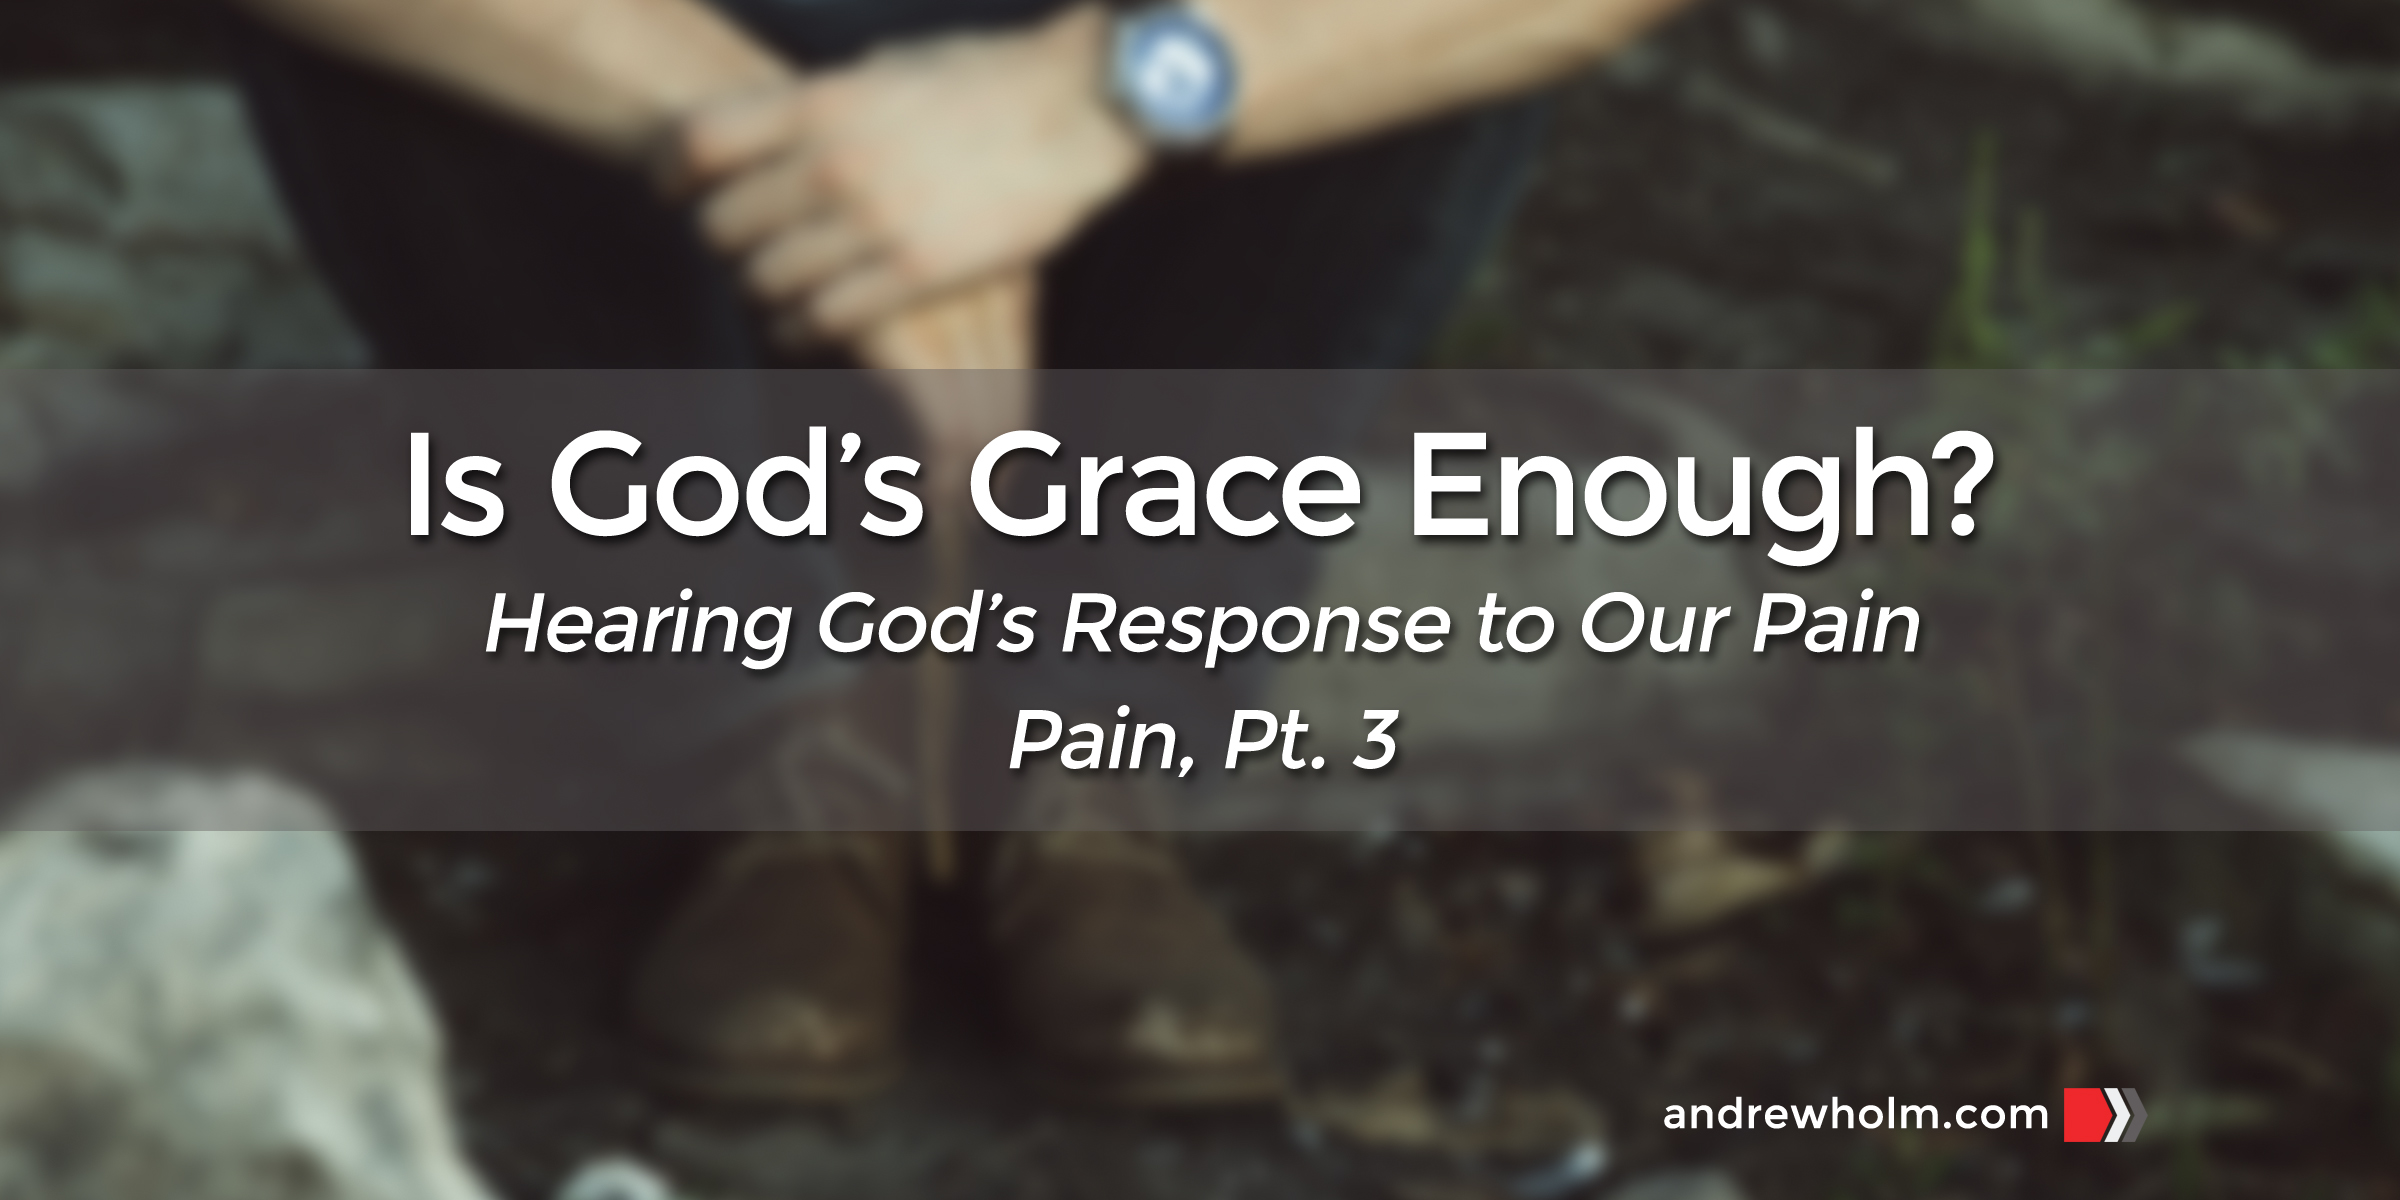 Is God's Grace Enough?